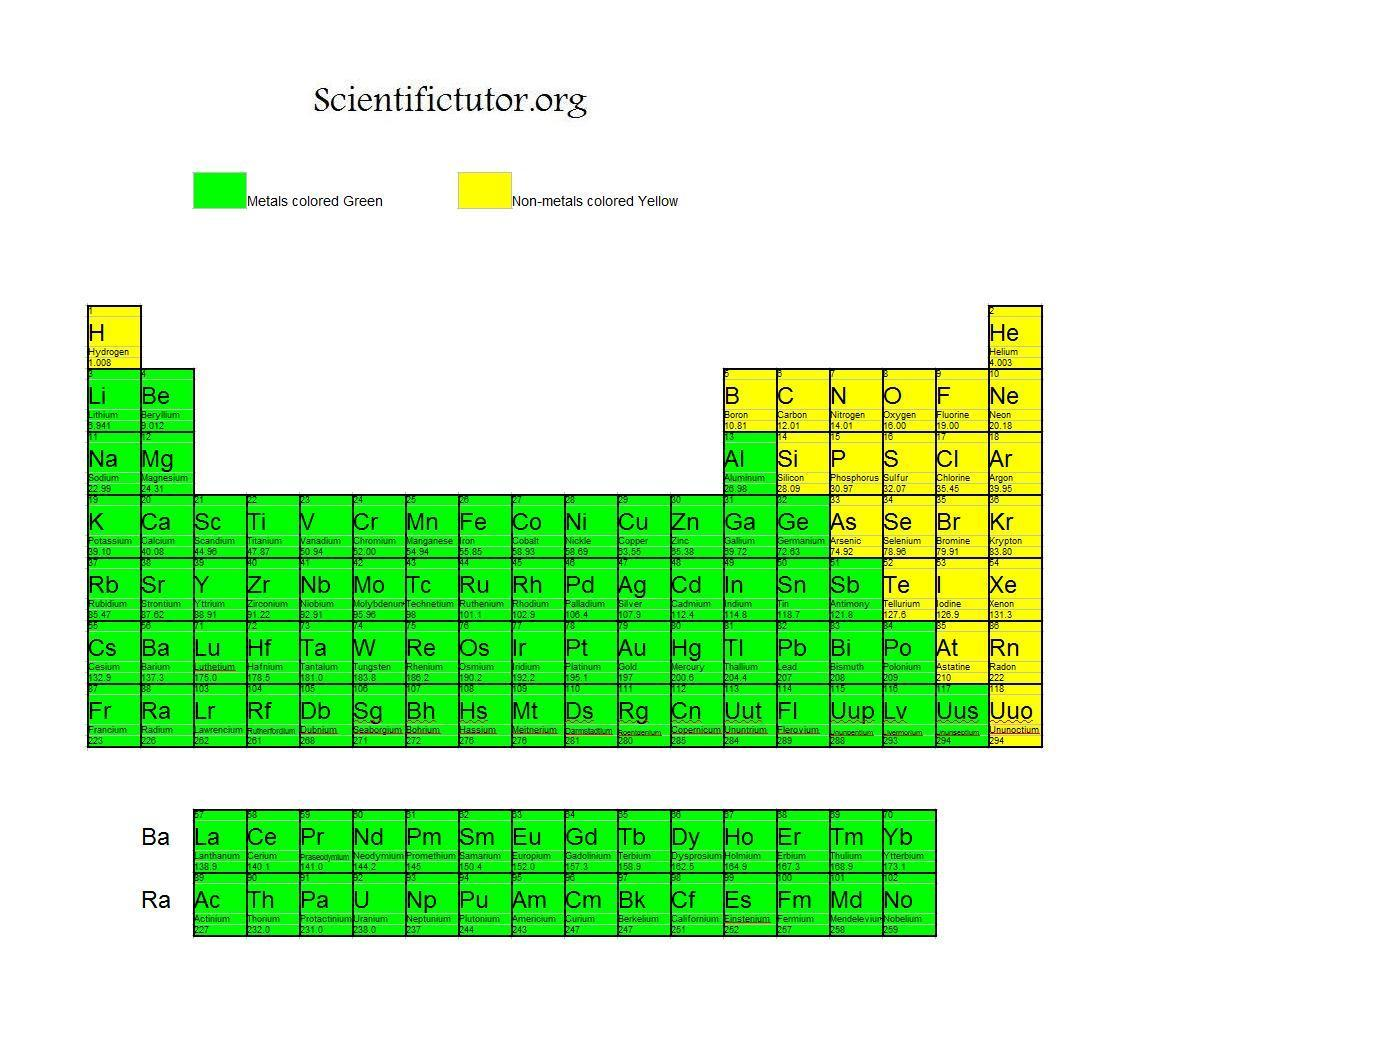 Chem metals and non metals scientific tutor for an example of a periodic table that shows this click here gamestrikefo Choice Image